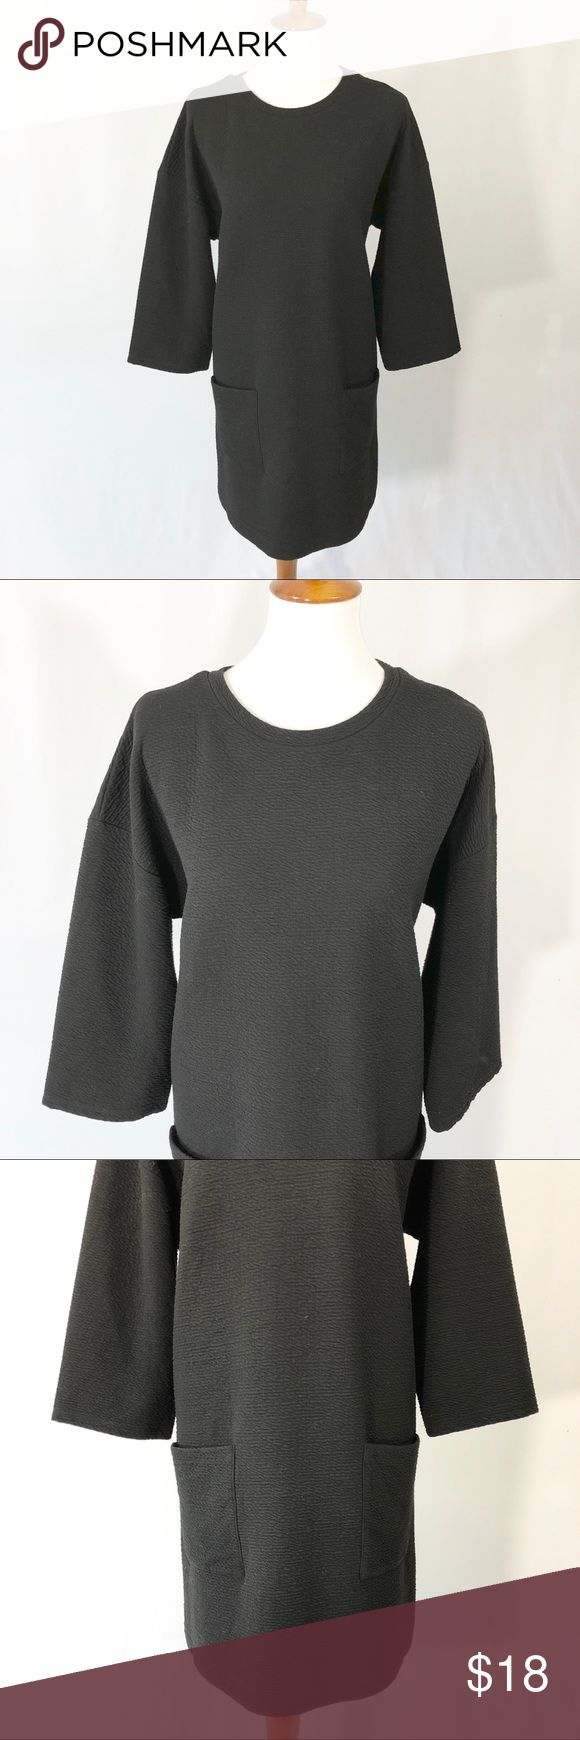 "& Other Stories tunic dress Black & Other Stories tunic dress. Size 12. Chest 22"", Sleeve 24"", Length 35.5"". Garment measured laying flat. Oversized fit with front pockets. Polyester/viscose/elastic blend. Super soft. No try ons please. & Other Stories Dresses Long Sleeve"